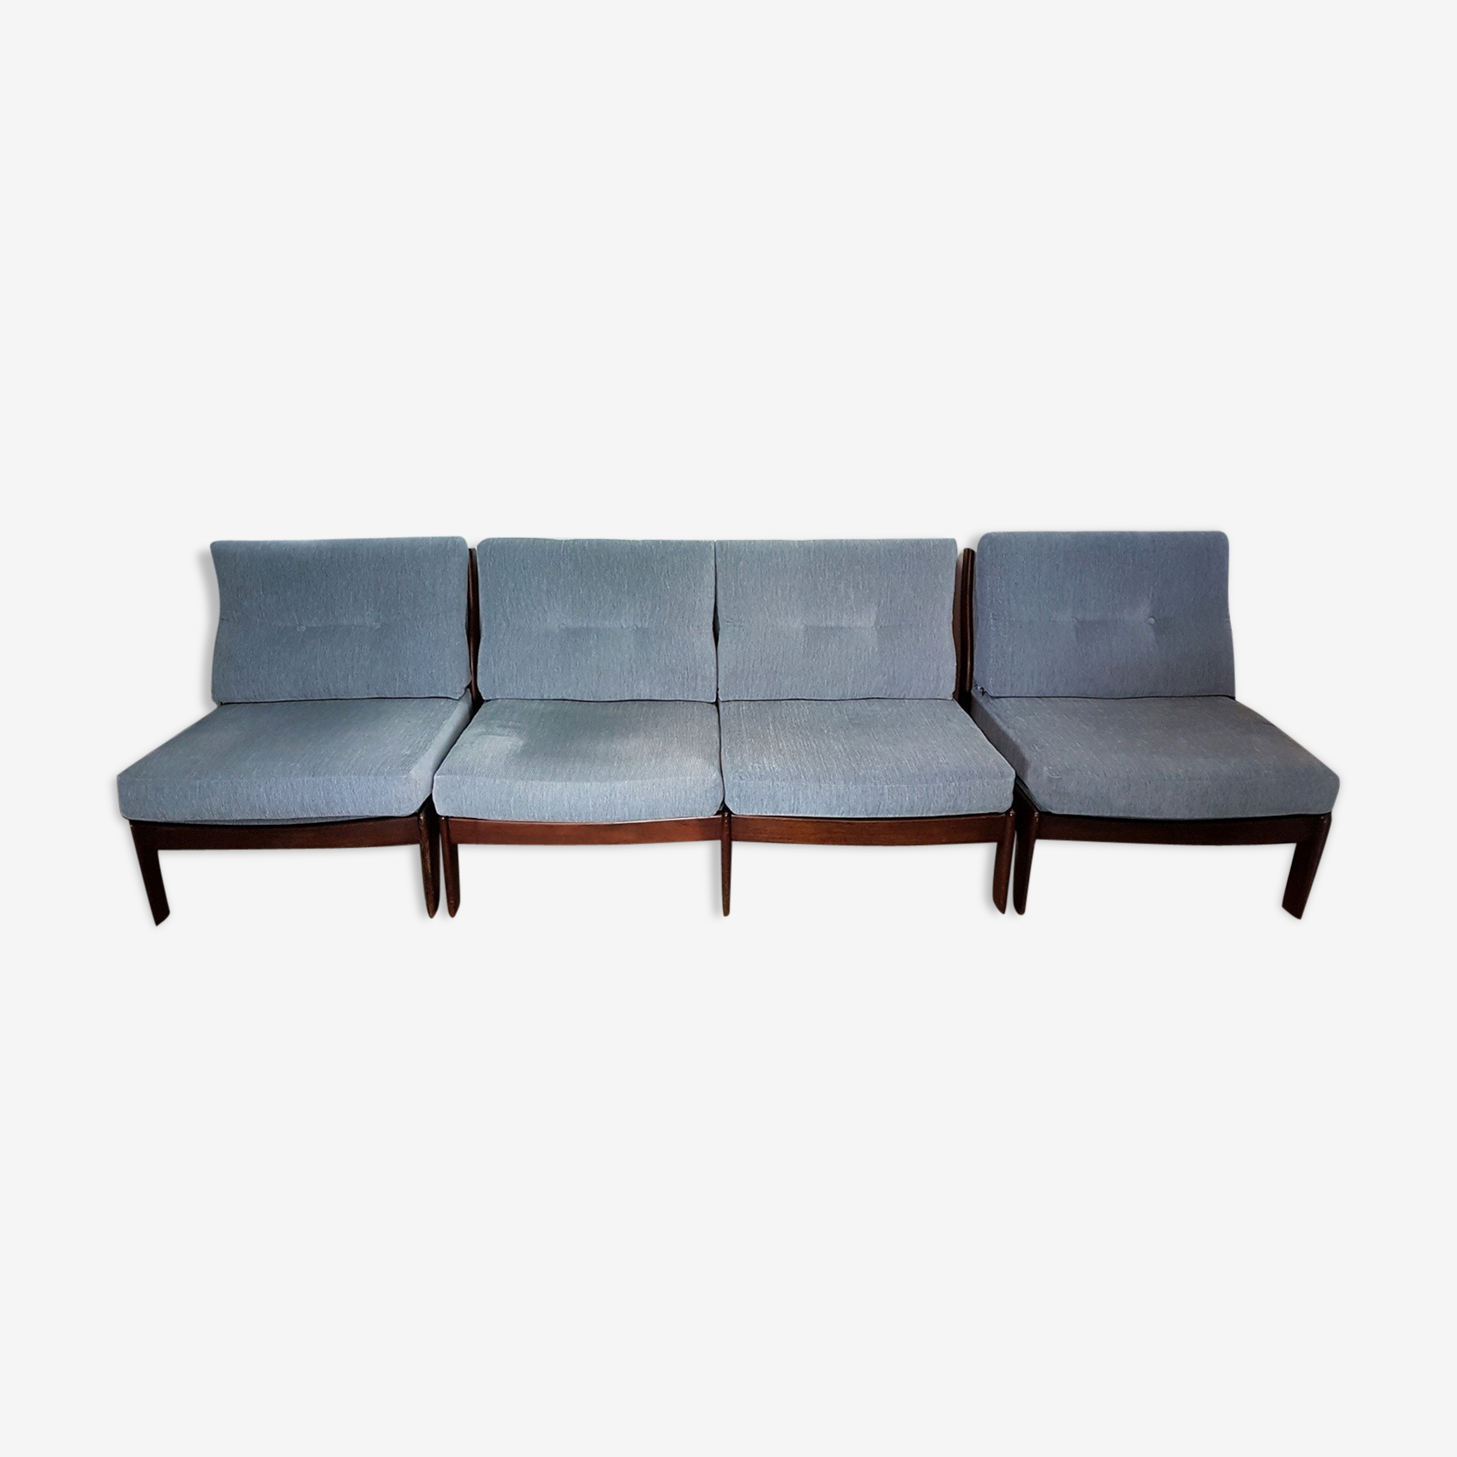 Set of 2 armchairs and a sofa